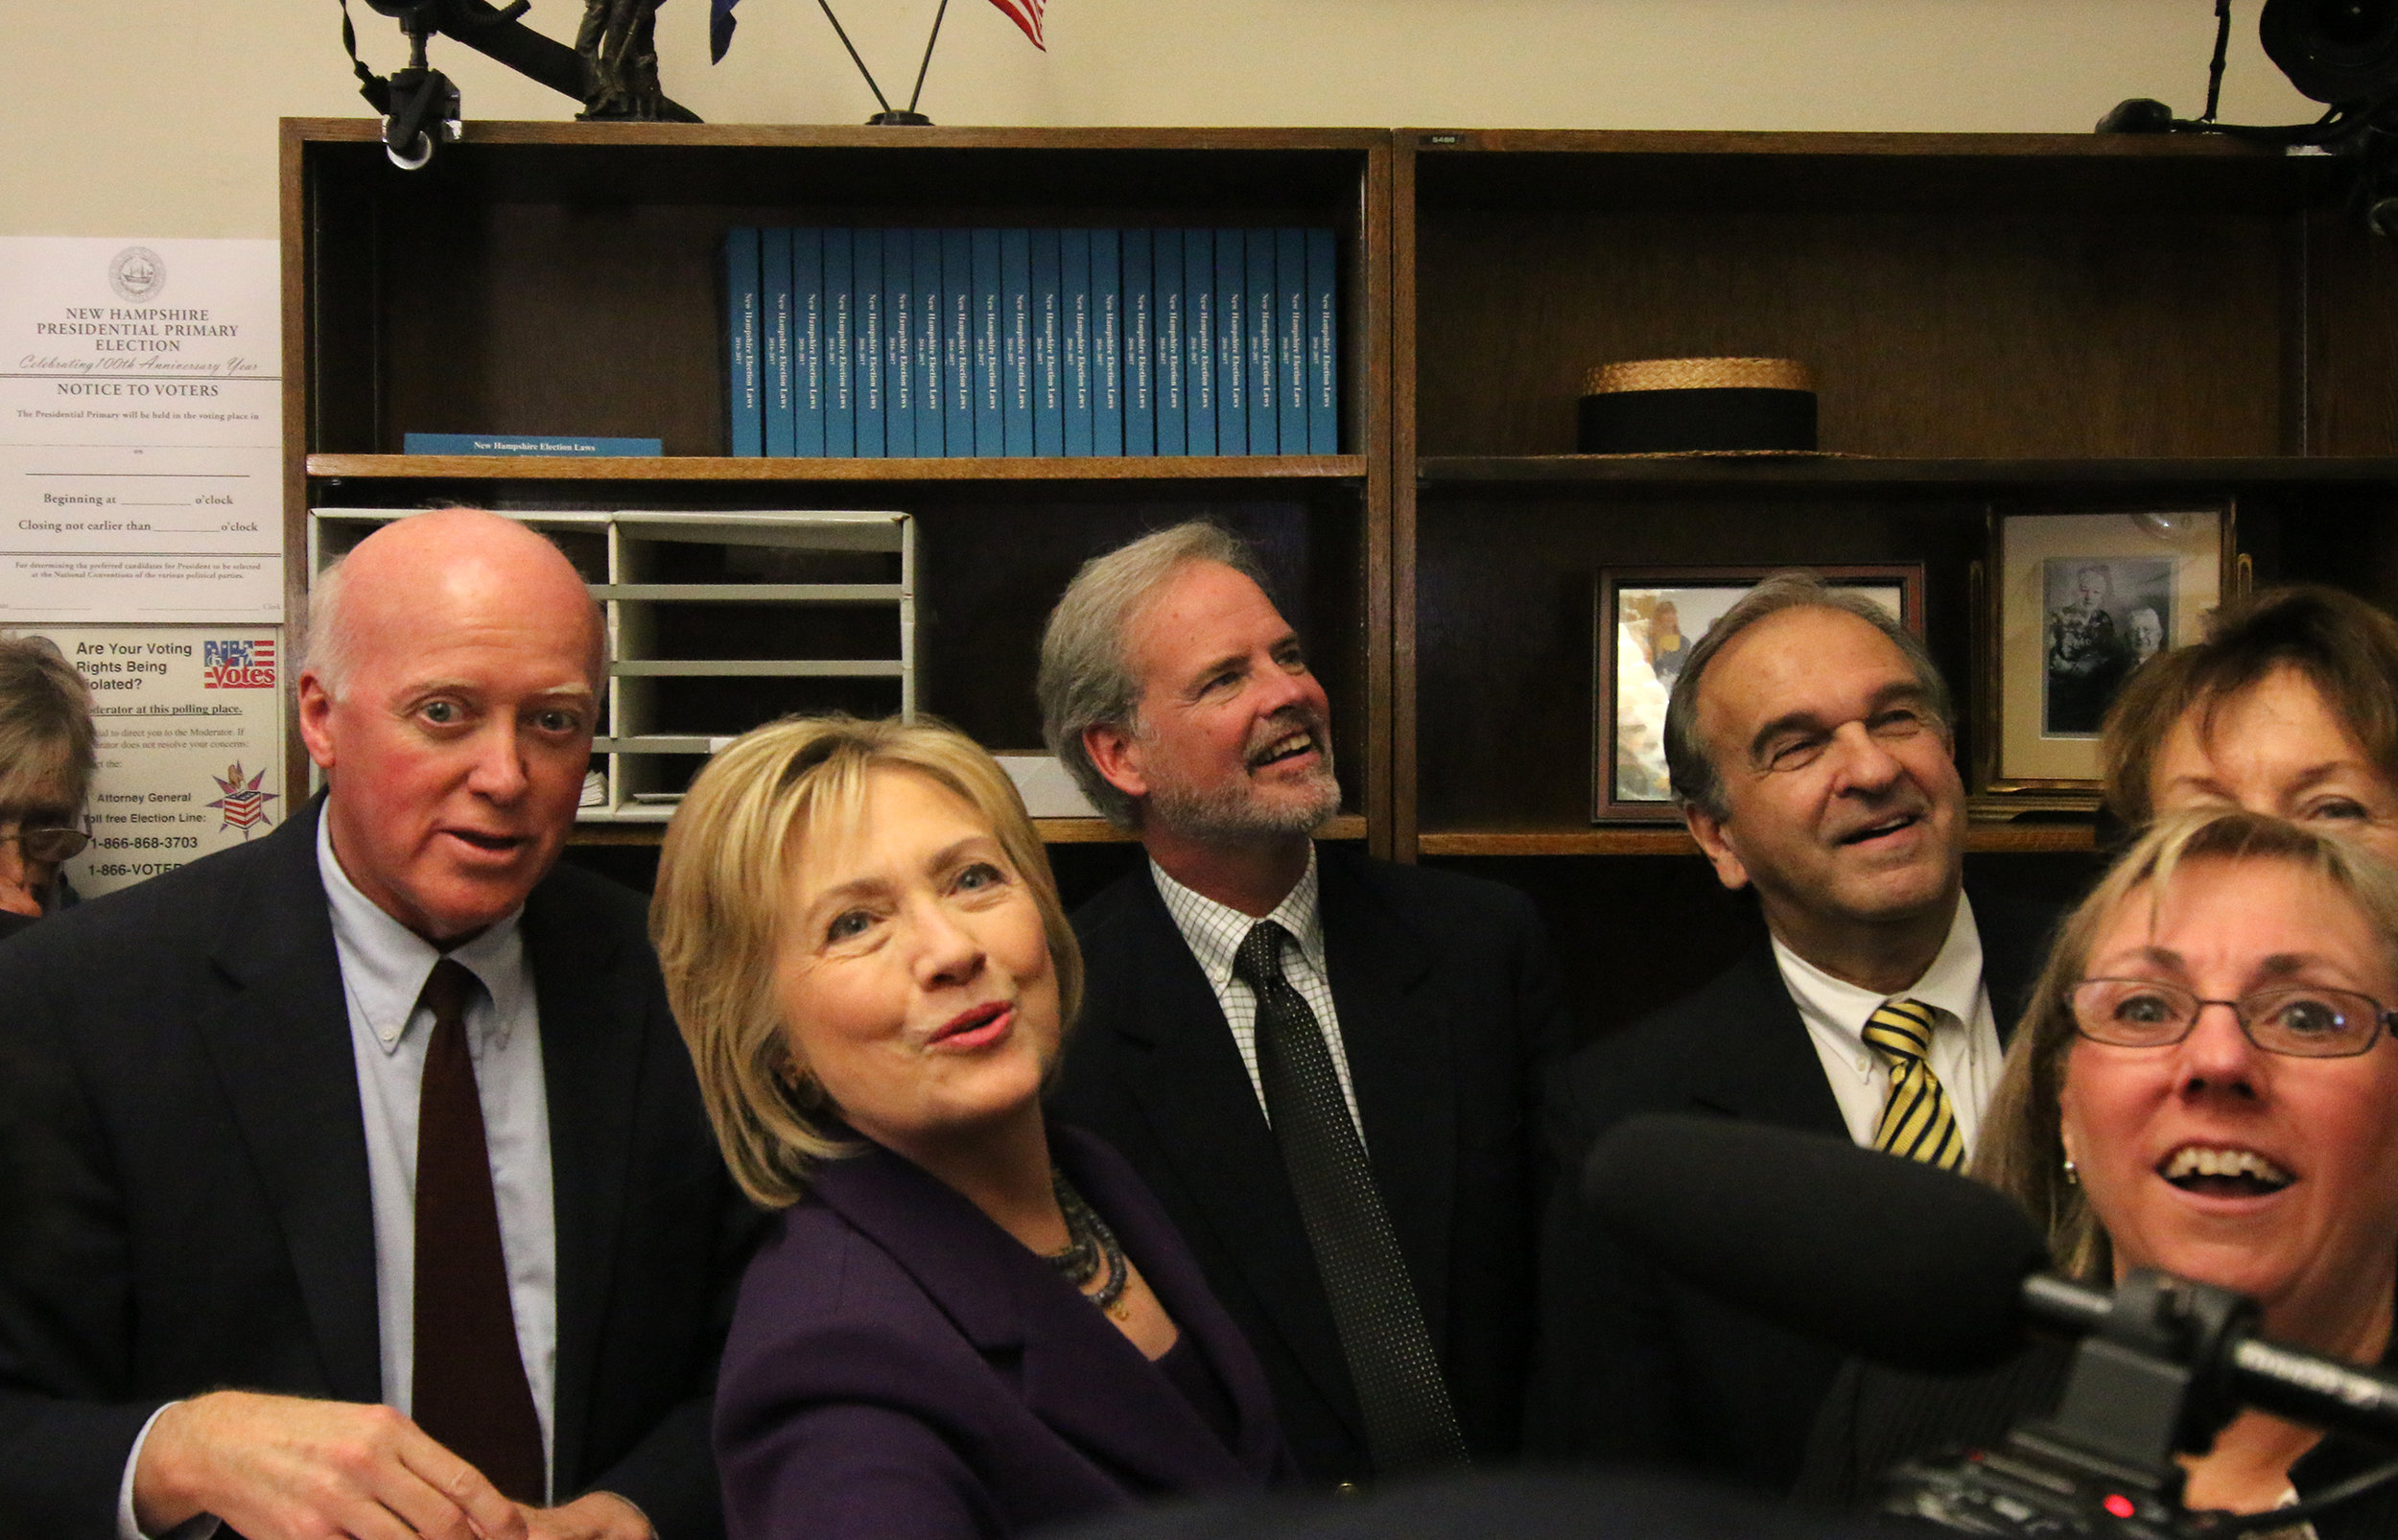 When Hillary Clinton filed for the 2016 New Hampshire primary, Gardner pointed out photos on his wall showing both her and husband filing their candidacy papers for past elections in the very same office. Photo by Allegra Boverman.